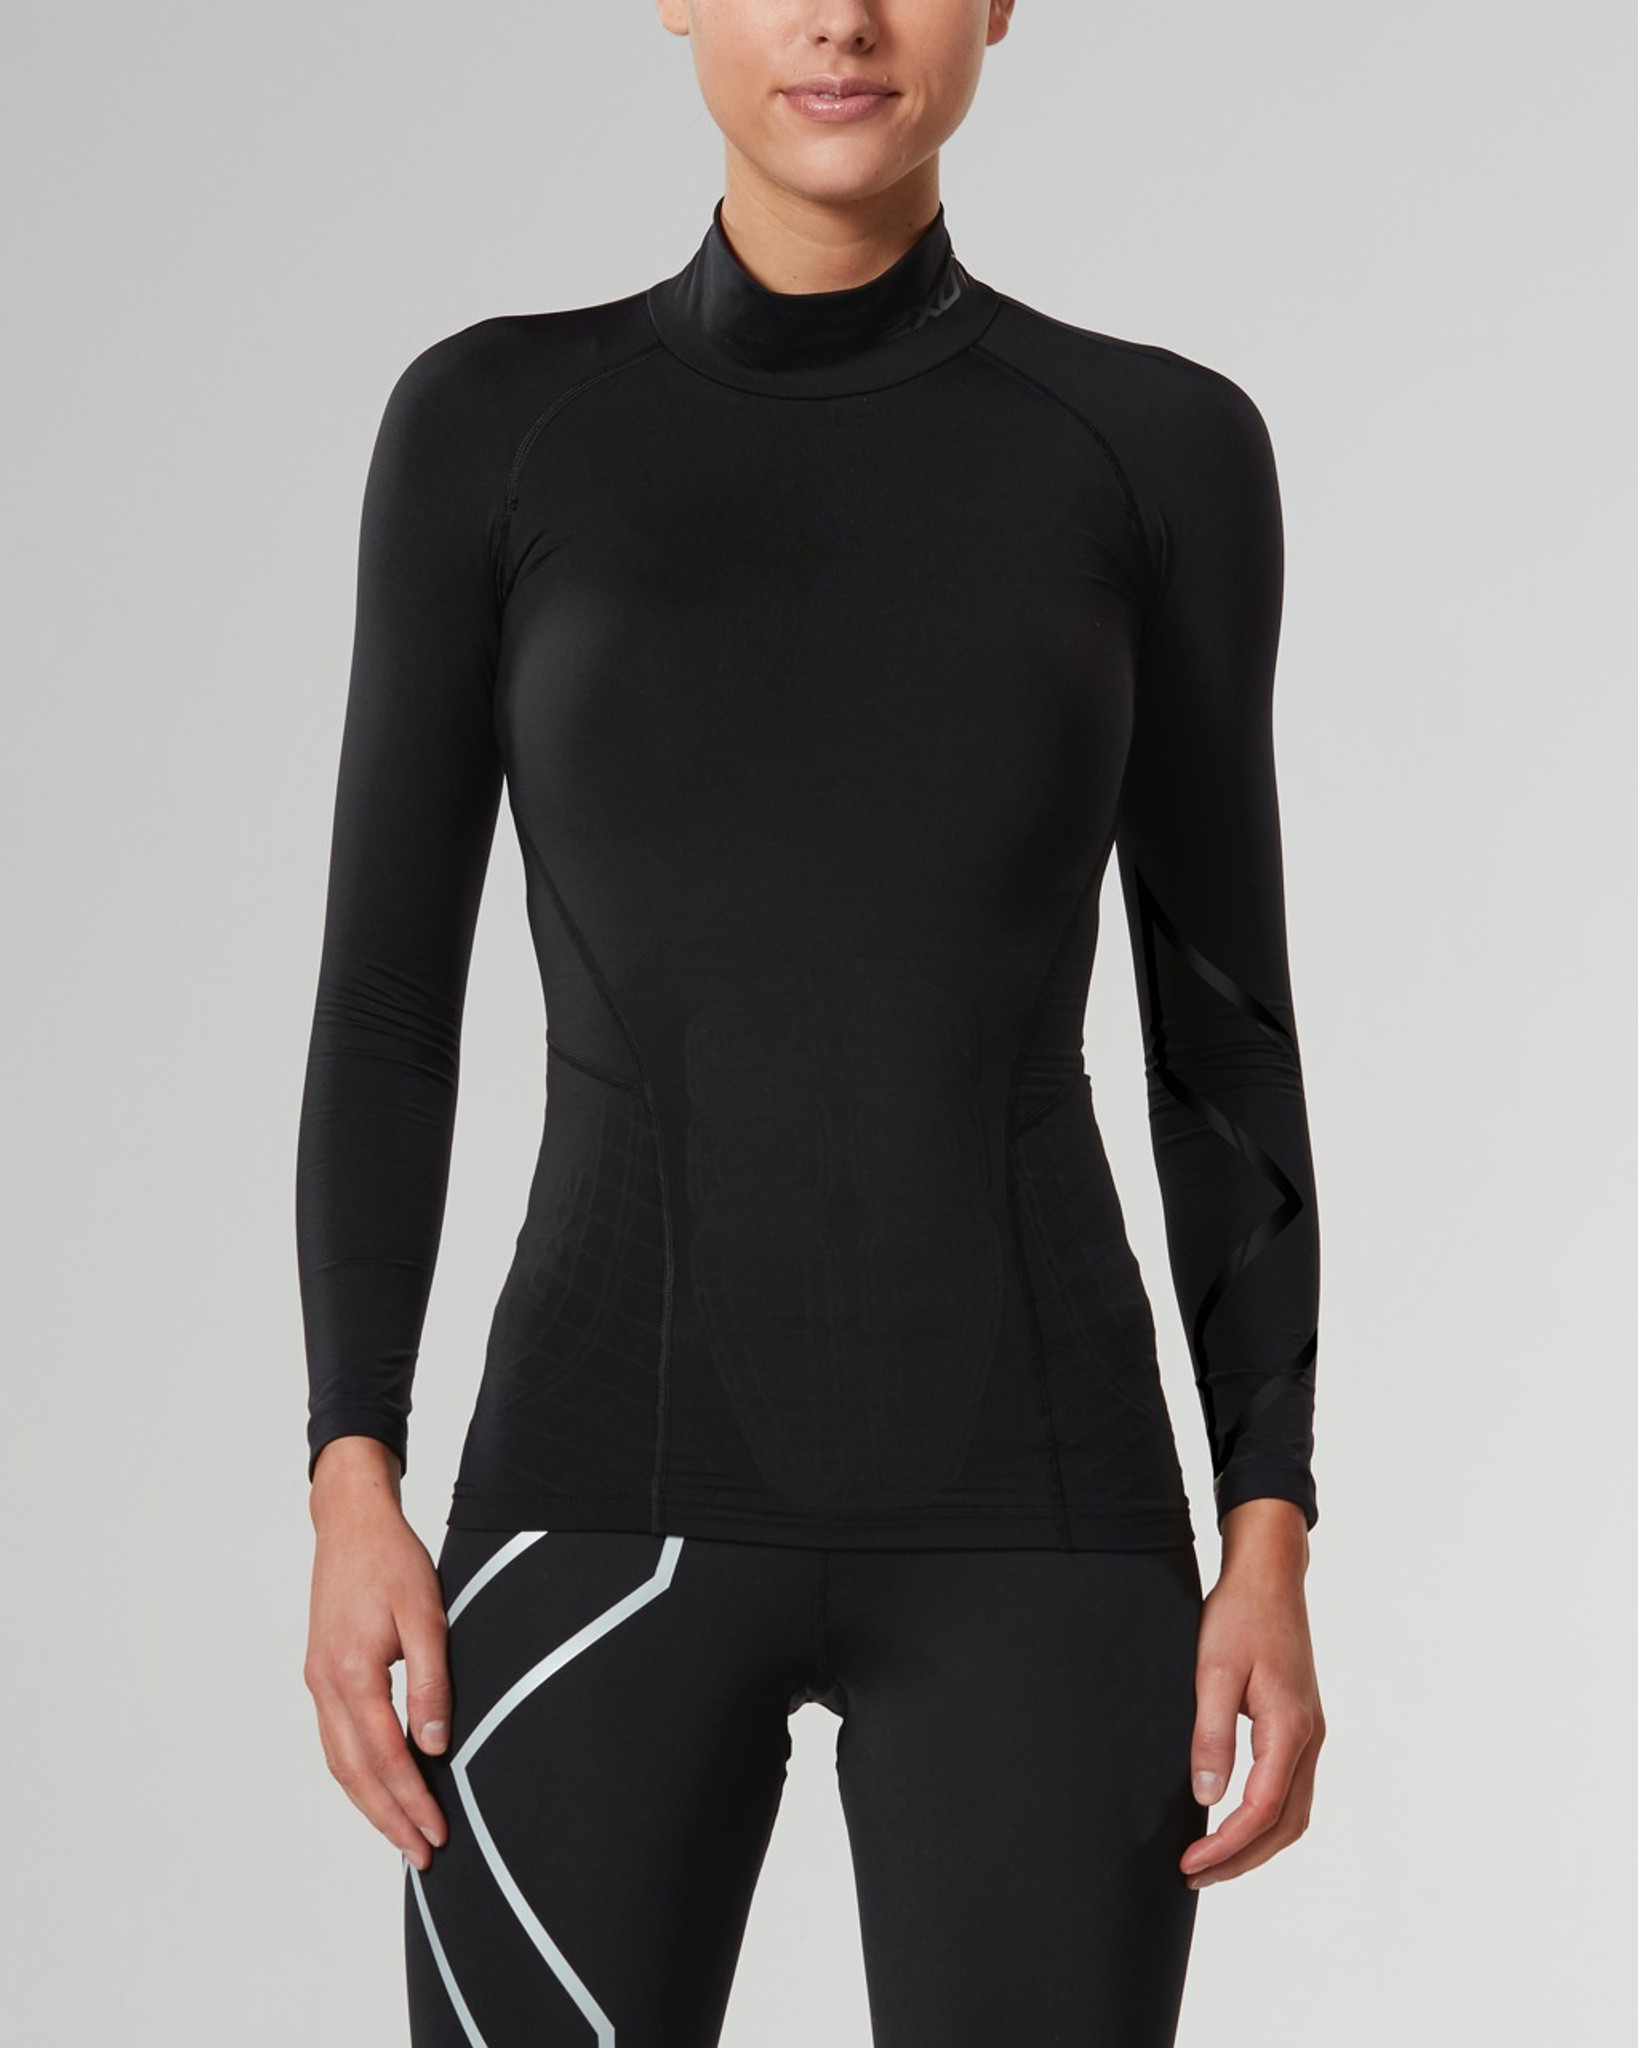 ccaf9ef92e ... 2XU - Women's Alpine MCS Thermal Compression Top - AW17 · Black/Gold.  Black/Nero